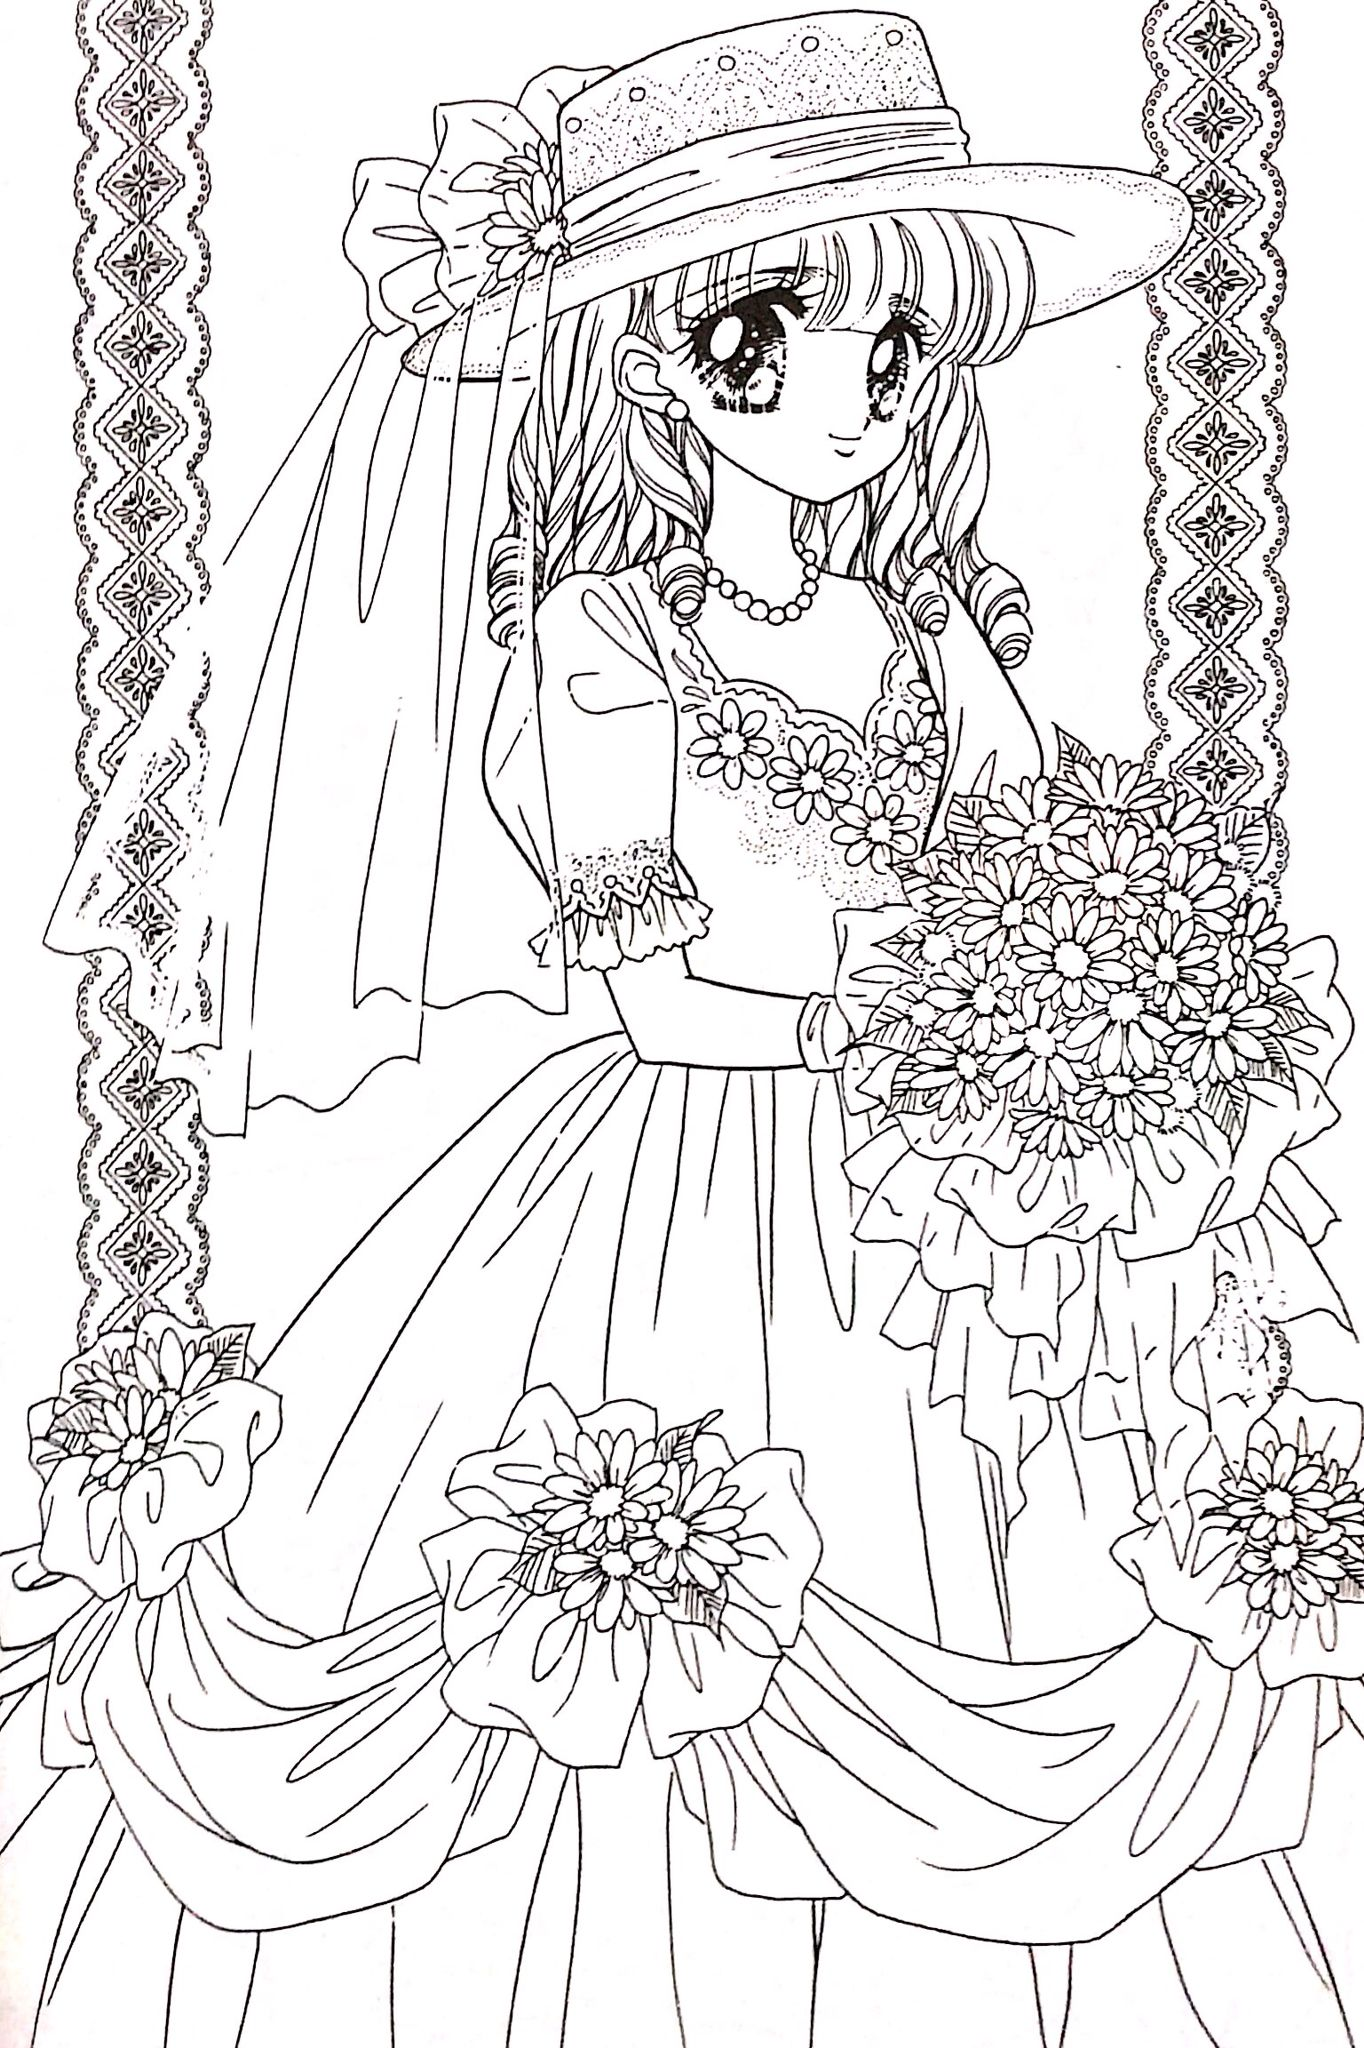 i gonna color this and put it on http://kleurvitality.blogspot.be ...